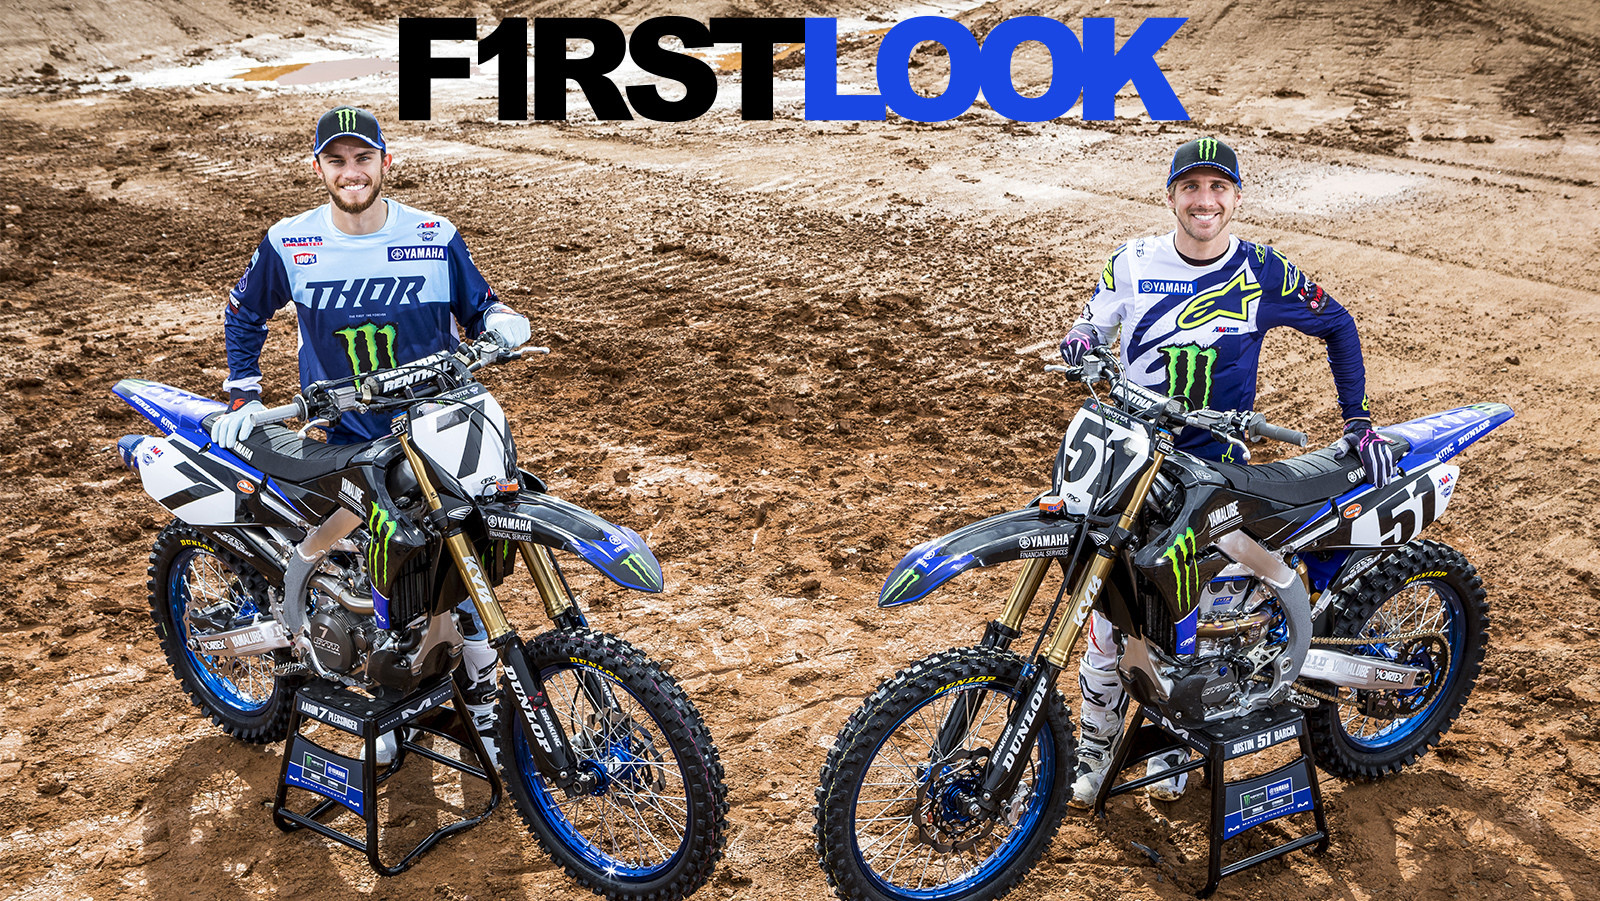 First Look: Monster Energy/Yamaha Factory Racing Team